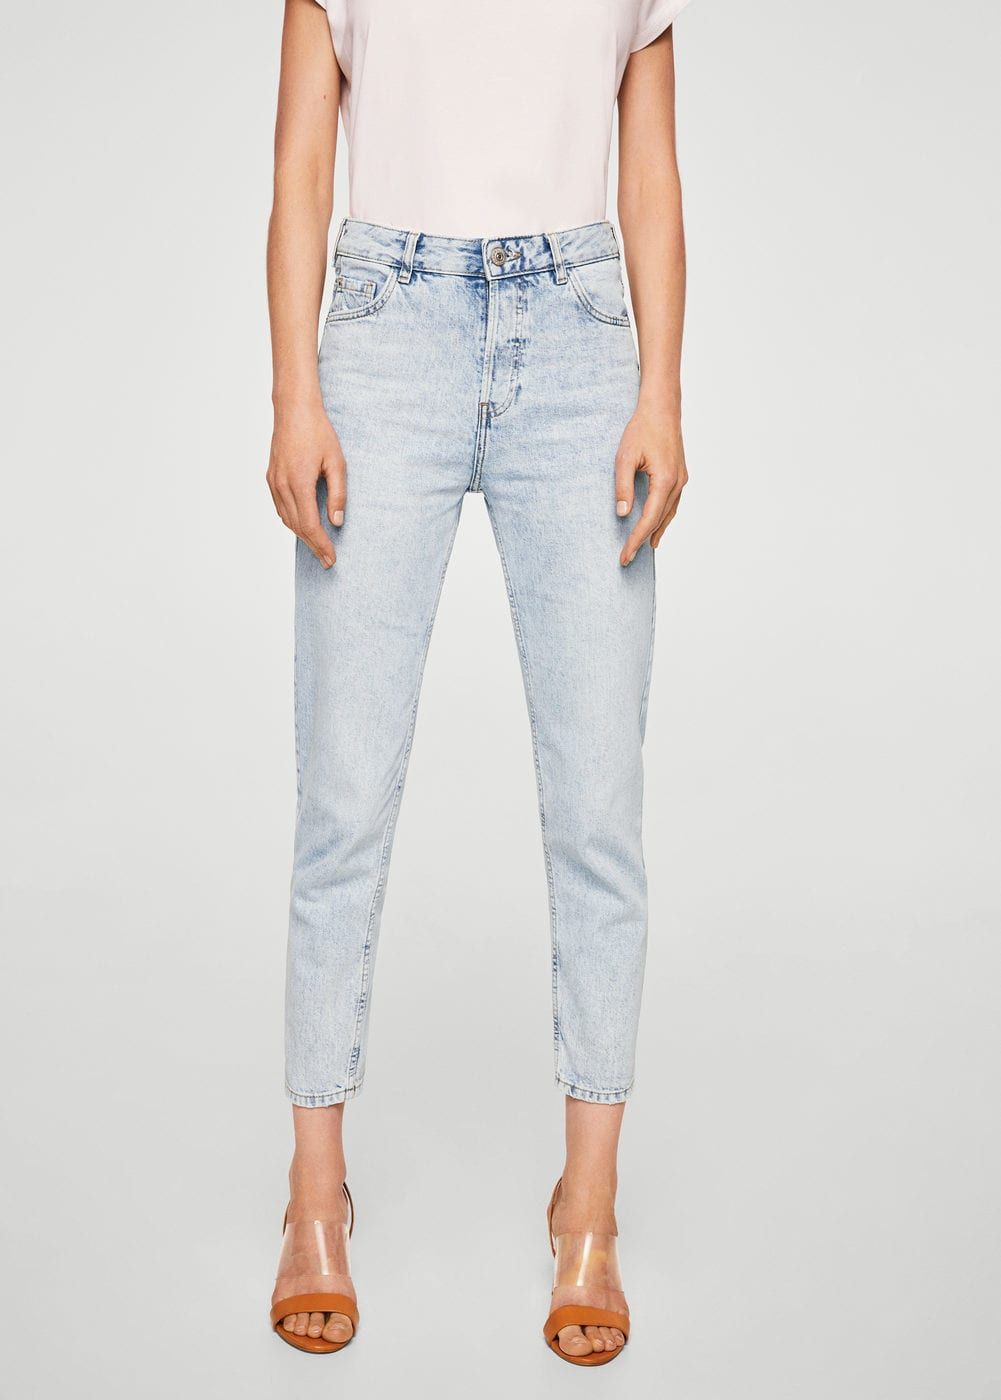 6502f15e3 Mom relaxed jeans - Women | want | Mango jeans, Jeans, Mom jeans